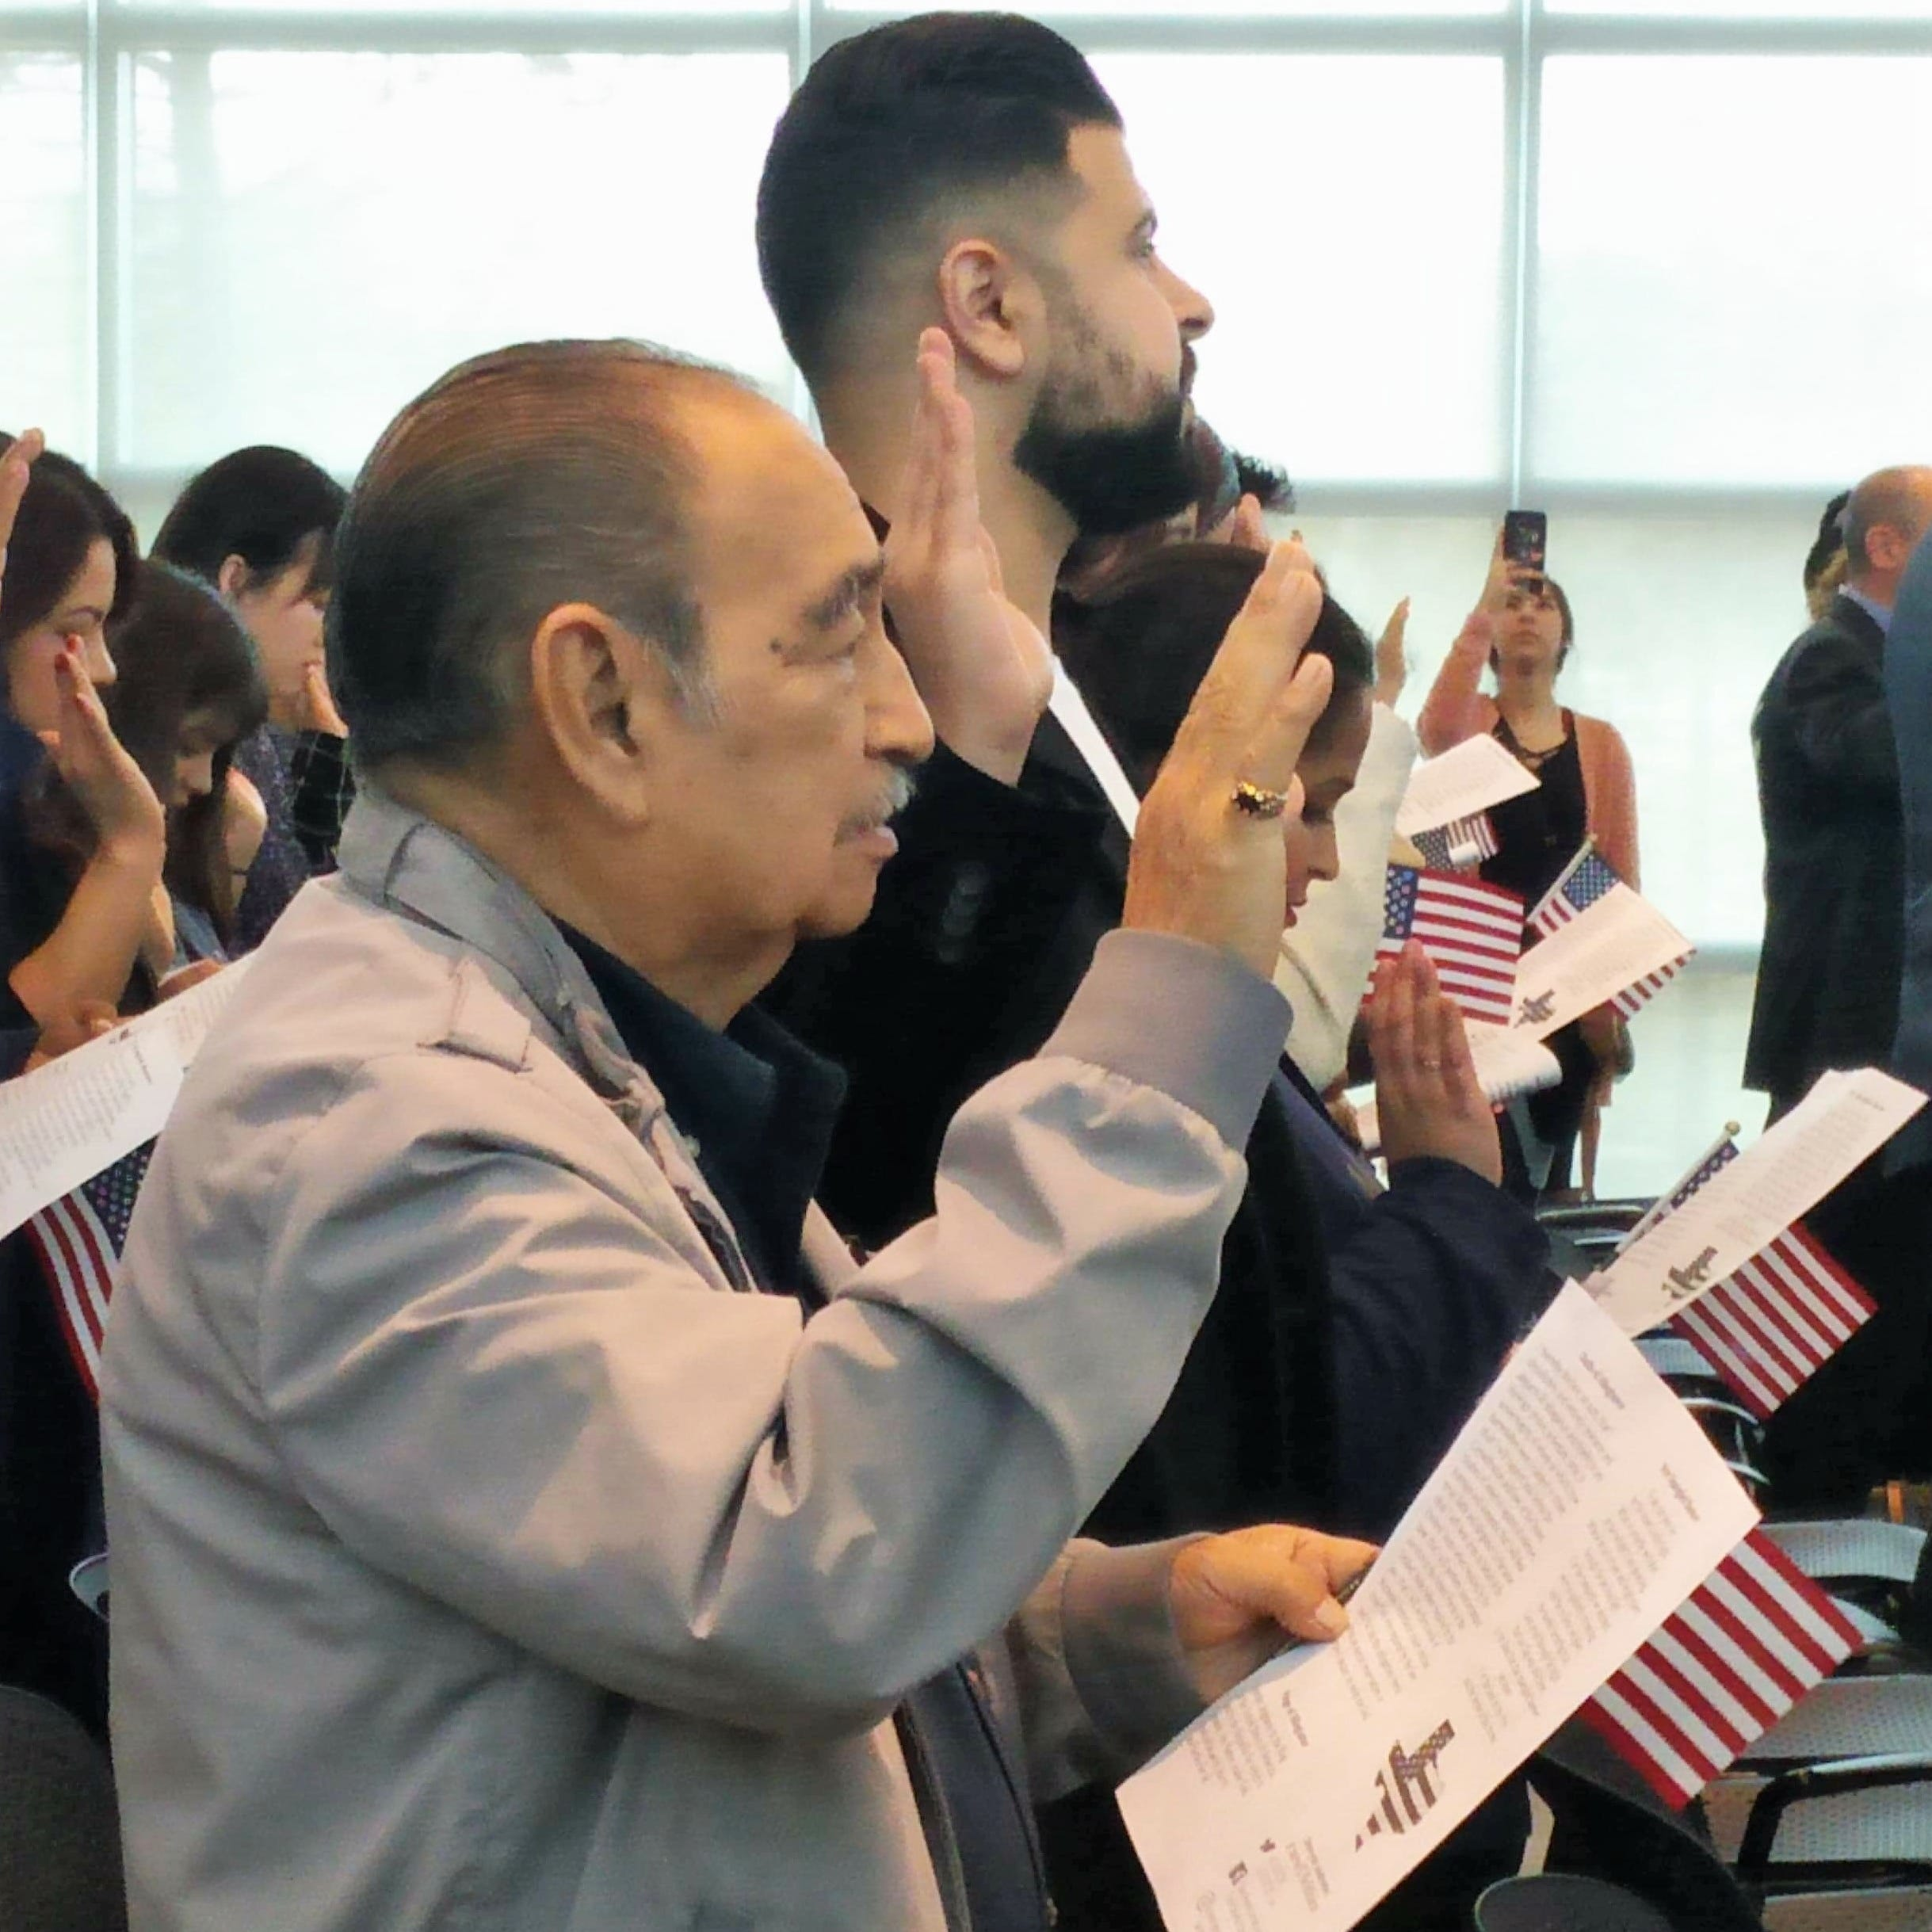 89-year-old Abilene man becomes an American citizen after nearly 70 years in the U.S.